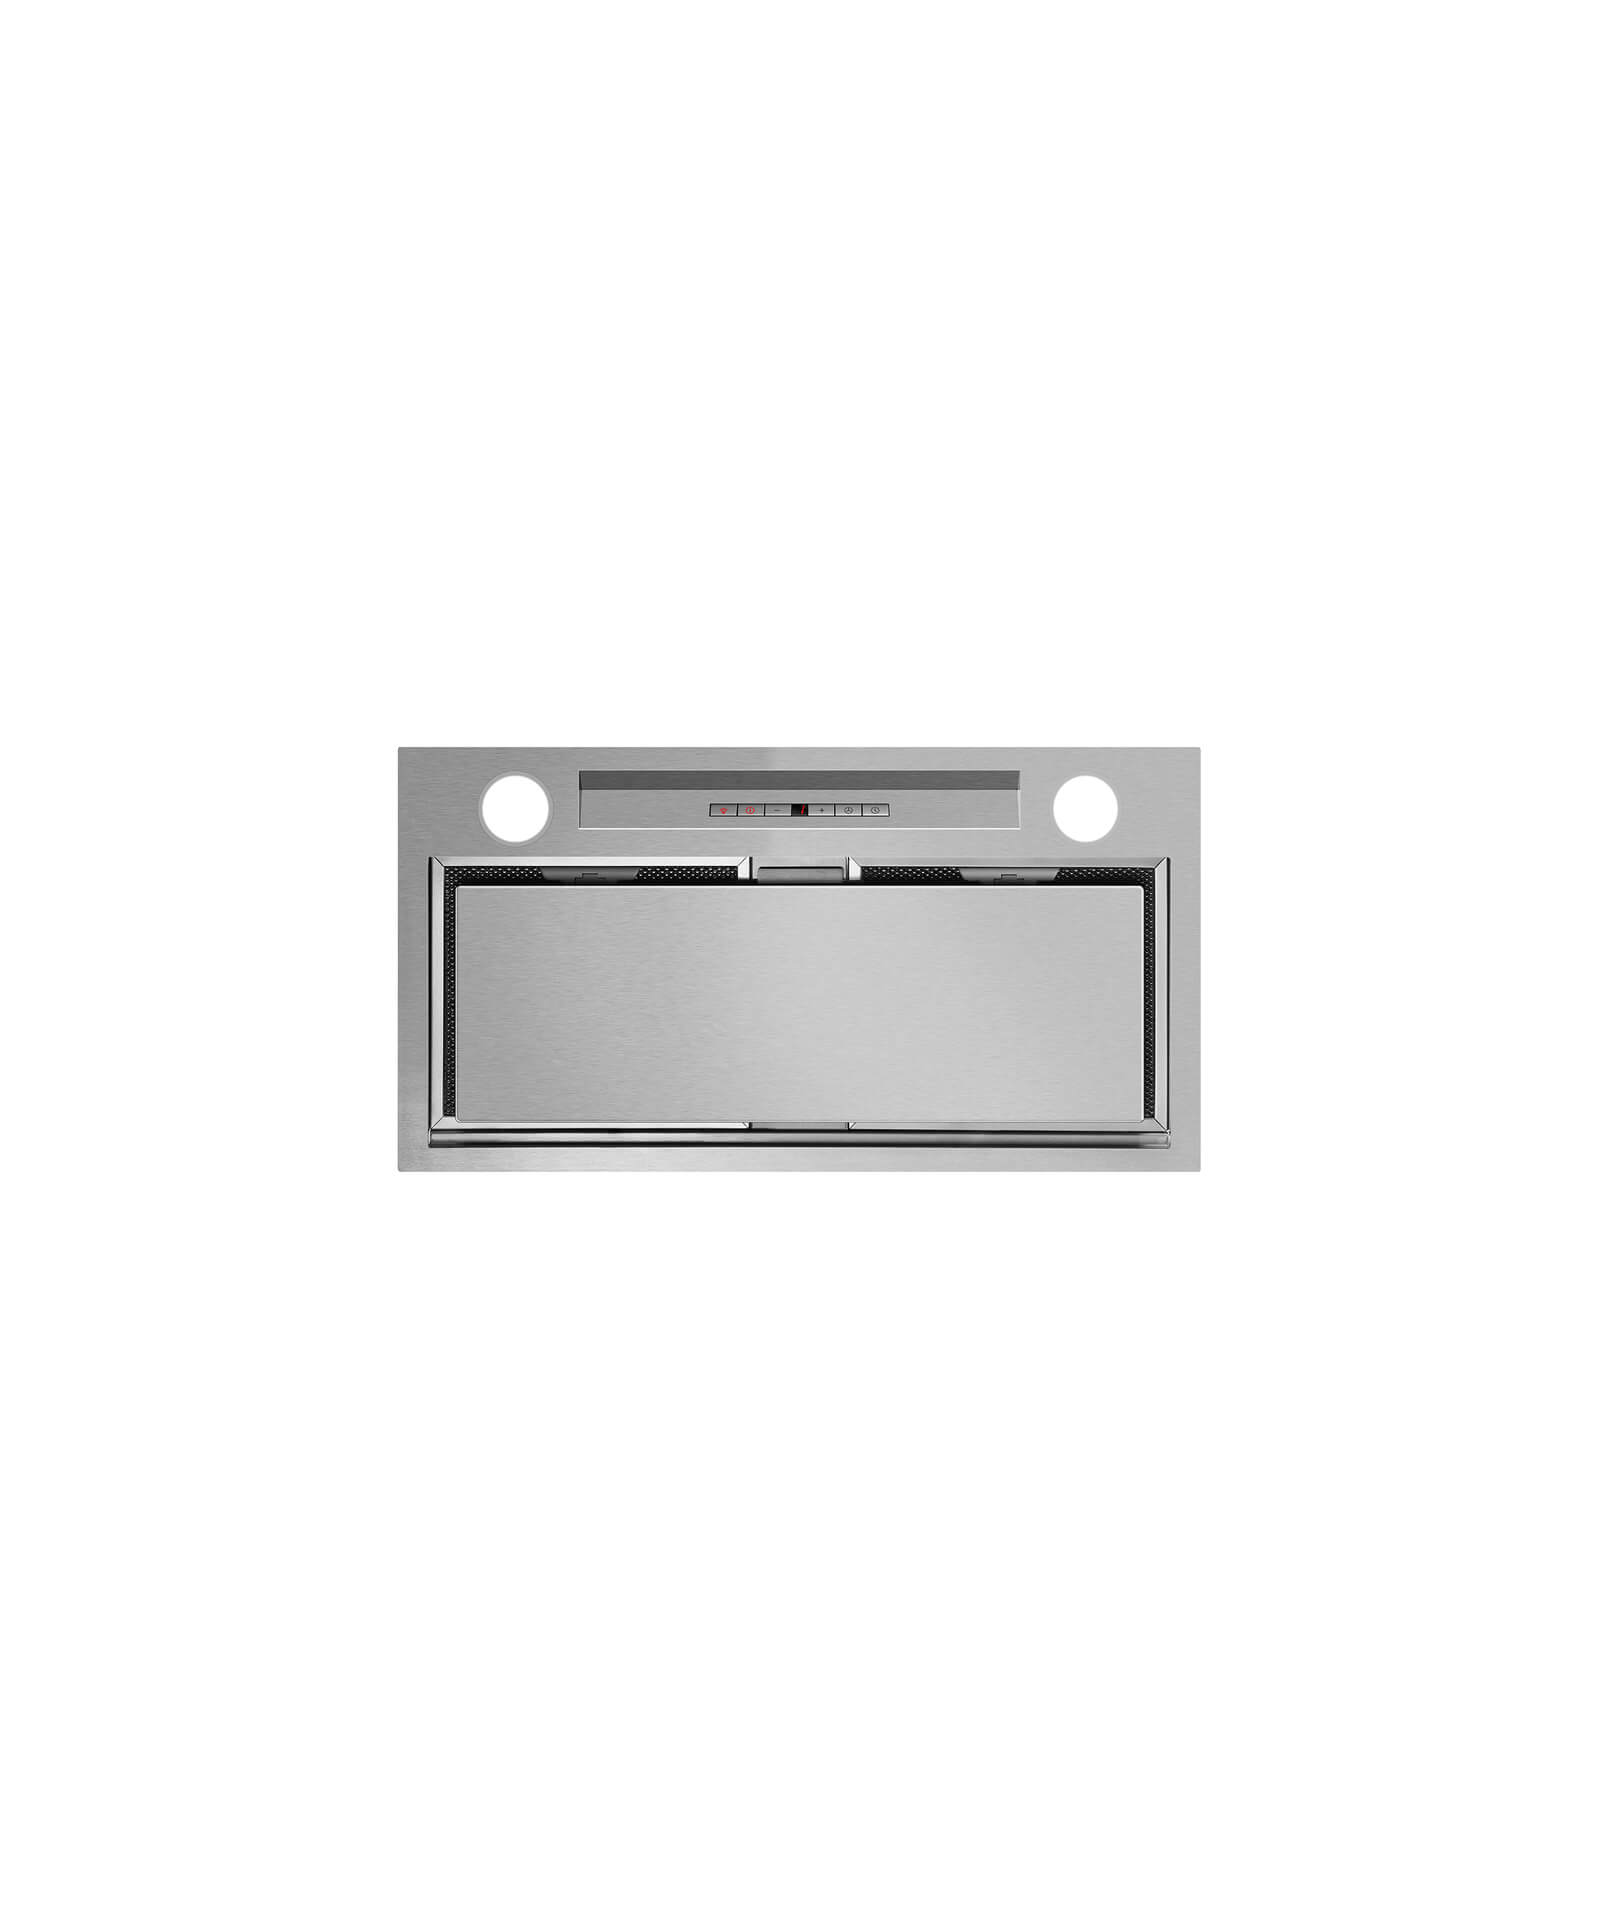 "Fisher and Paykel Ventilation Hood, 24"", Perimeter Insert"